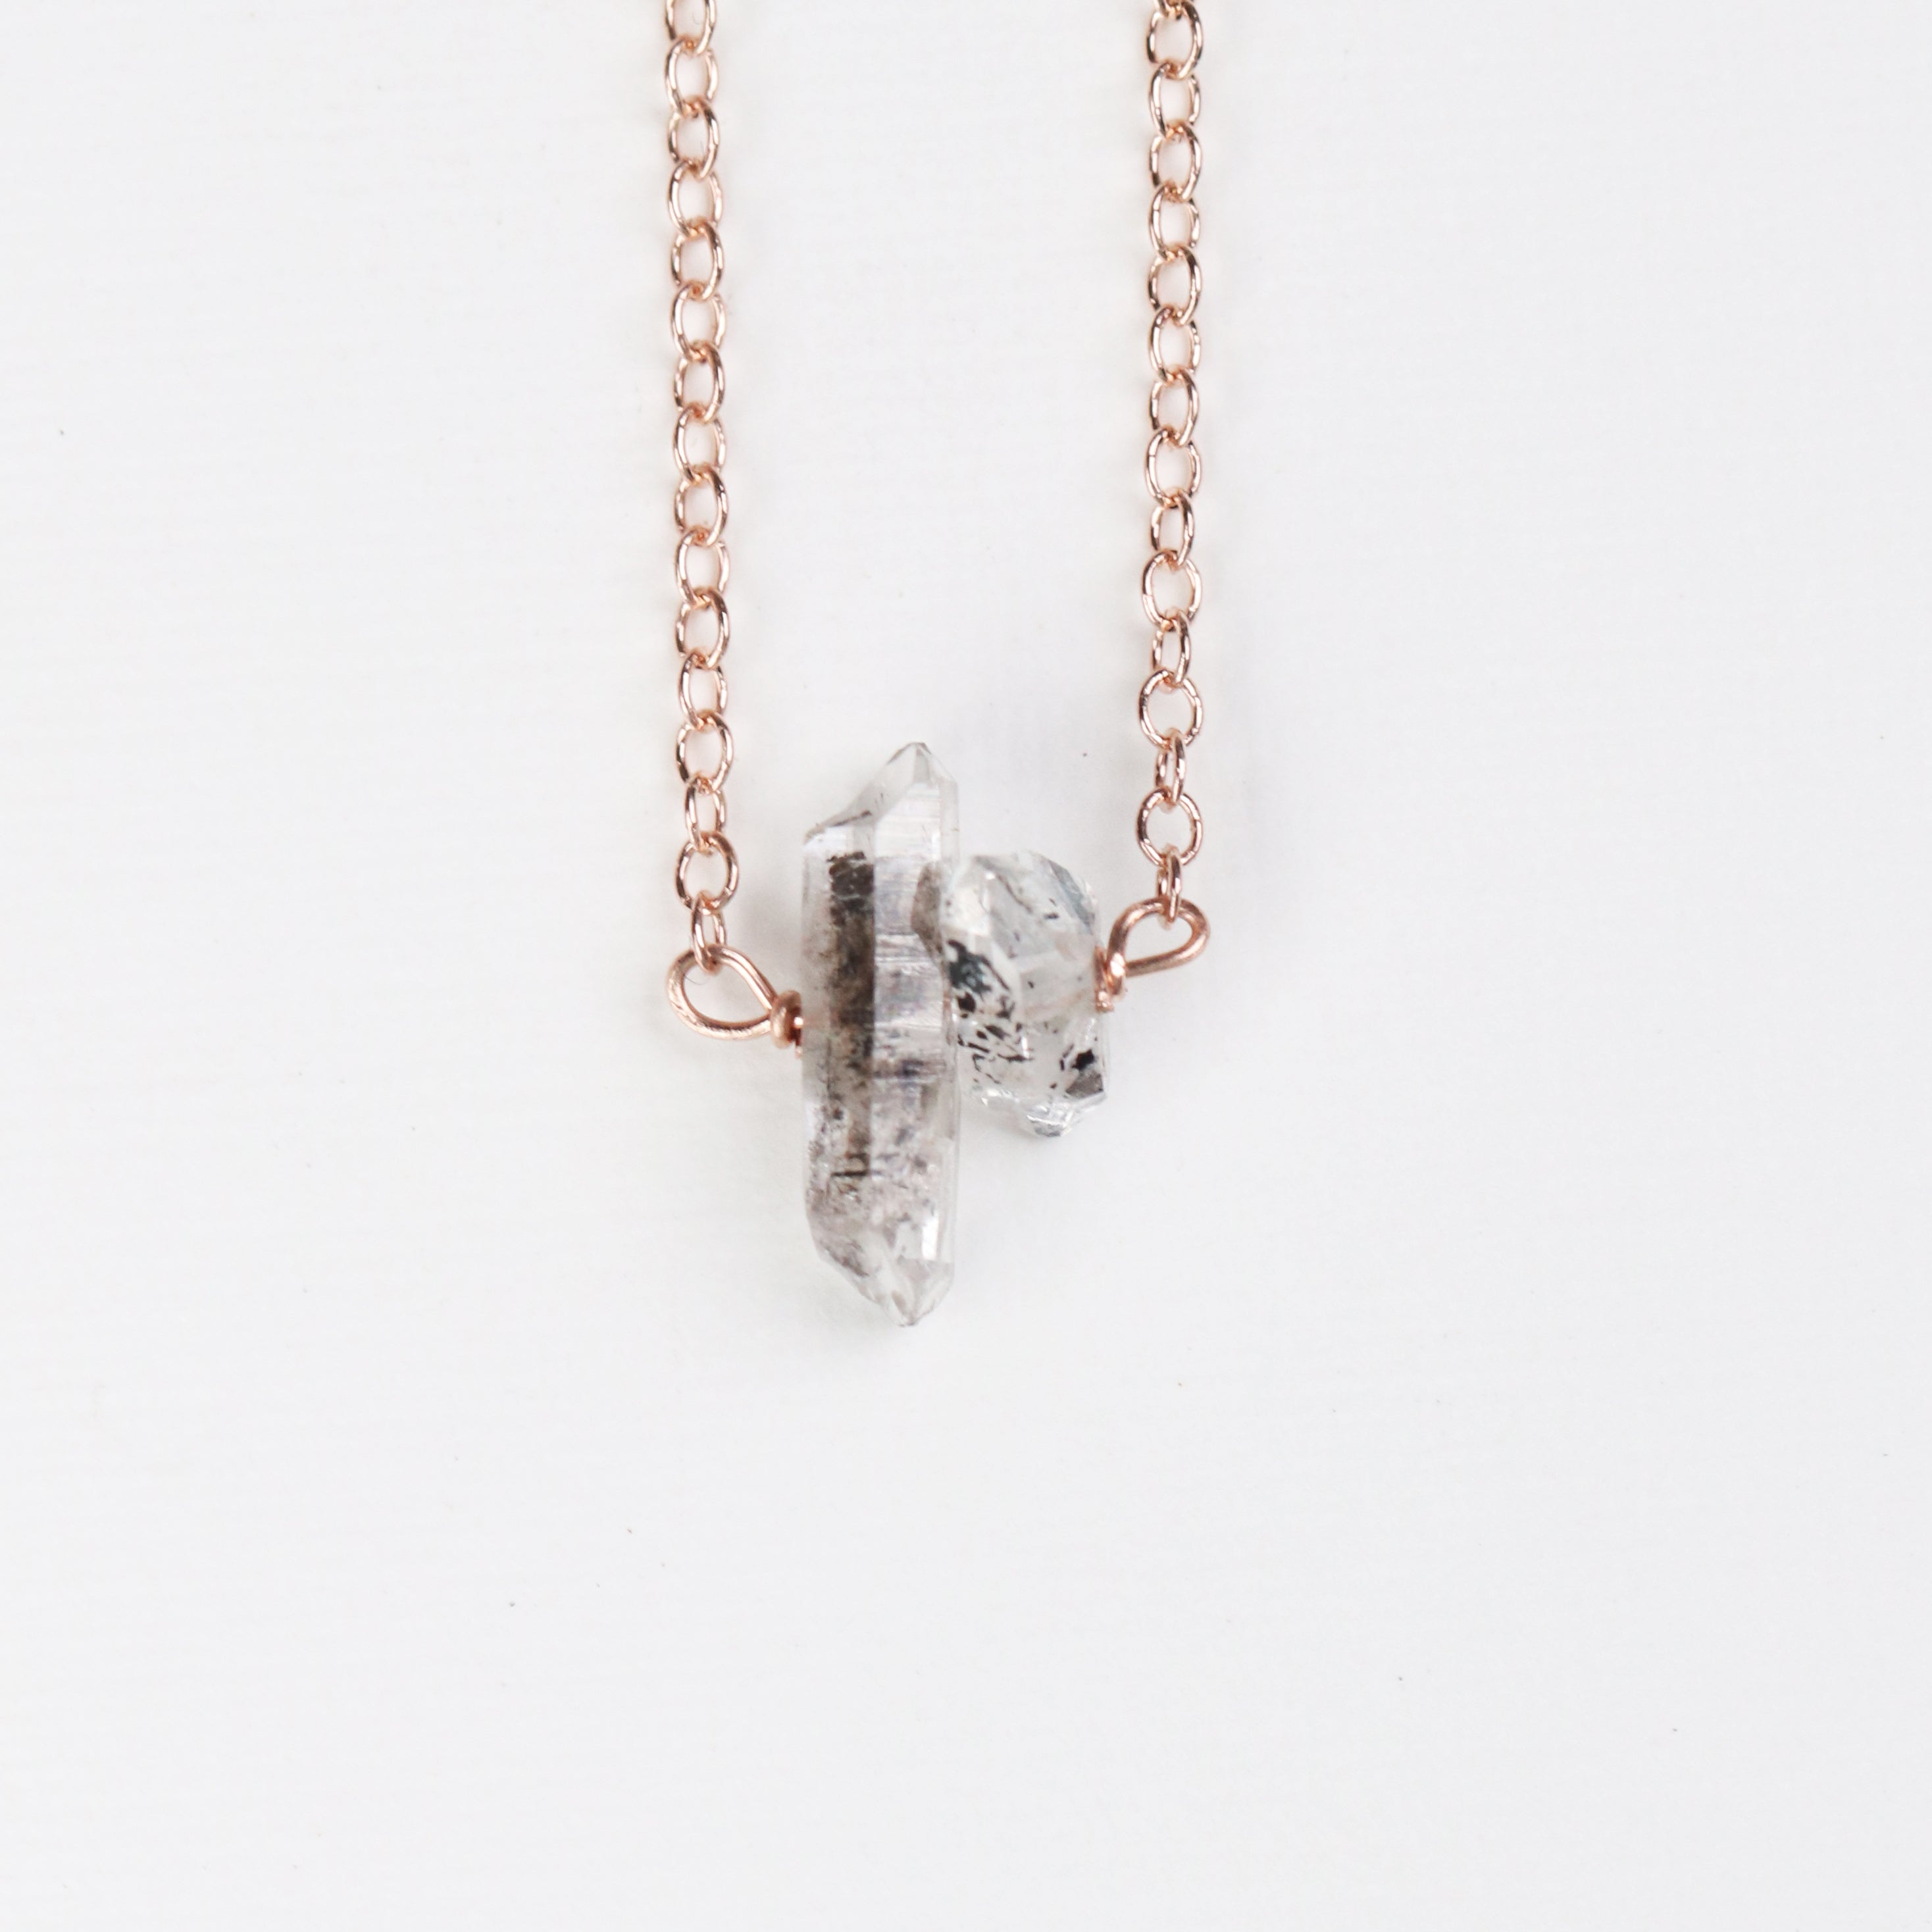 Raw Tourmalinated Quartz Necklace with 14k Rose Gold Fill or Sterling Silver Chain - Celestial Diamonds ® by Midwinter Co.